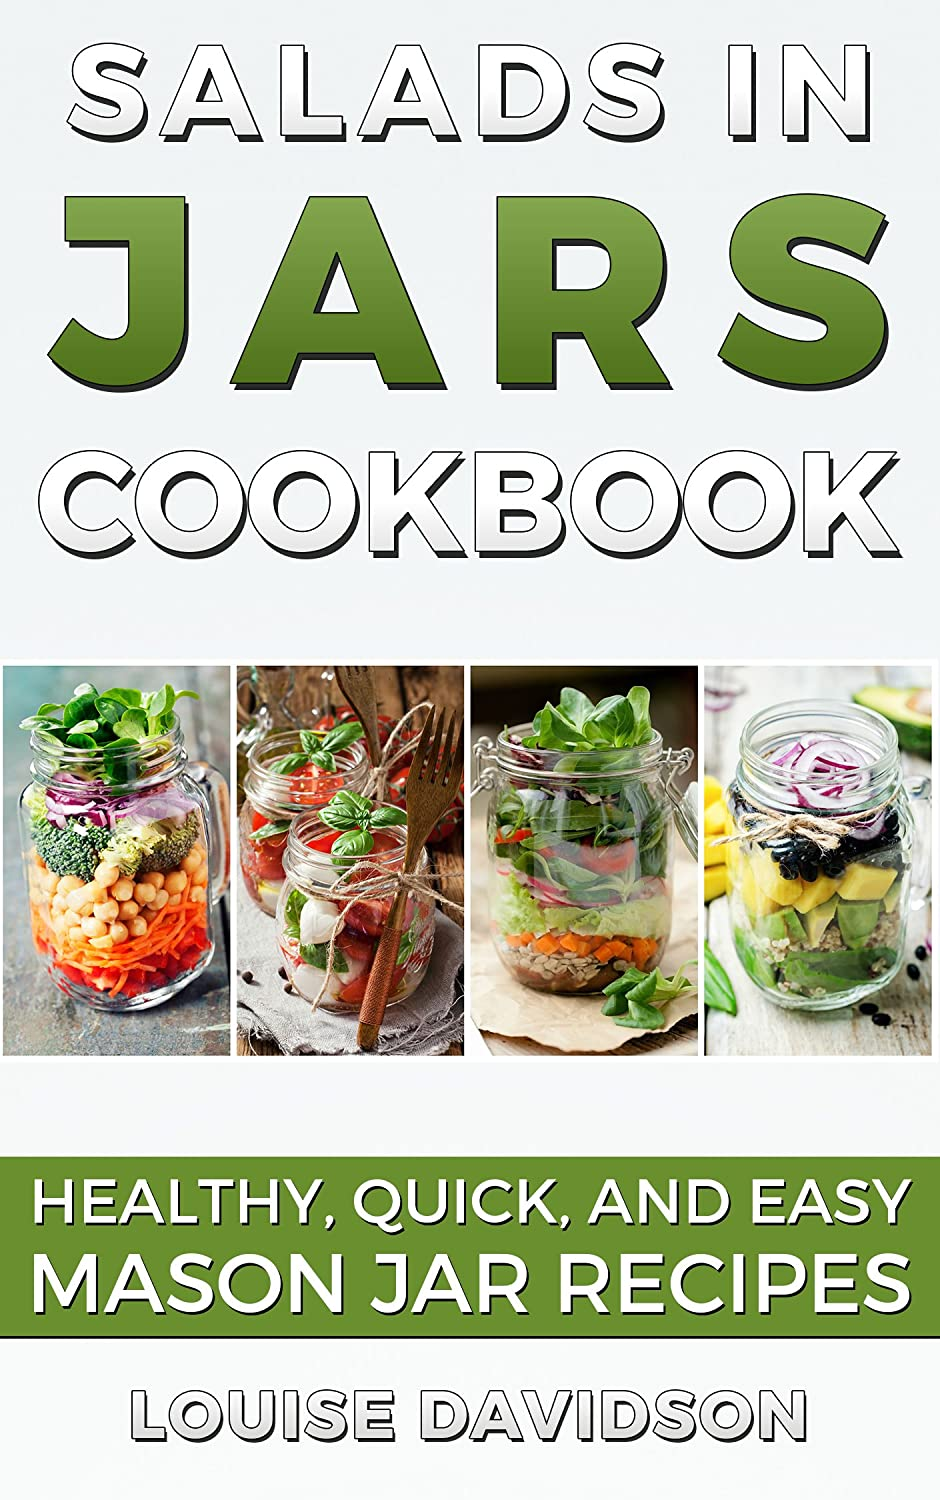 SALADS IN JARS COOKBOOK HEALTHY QUICK AND EASY MASON JAR